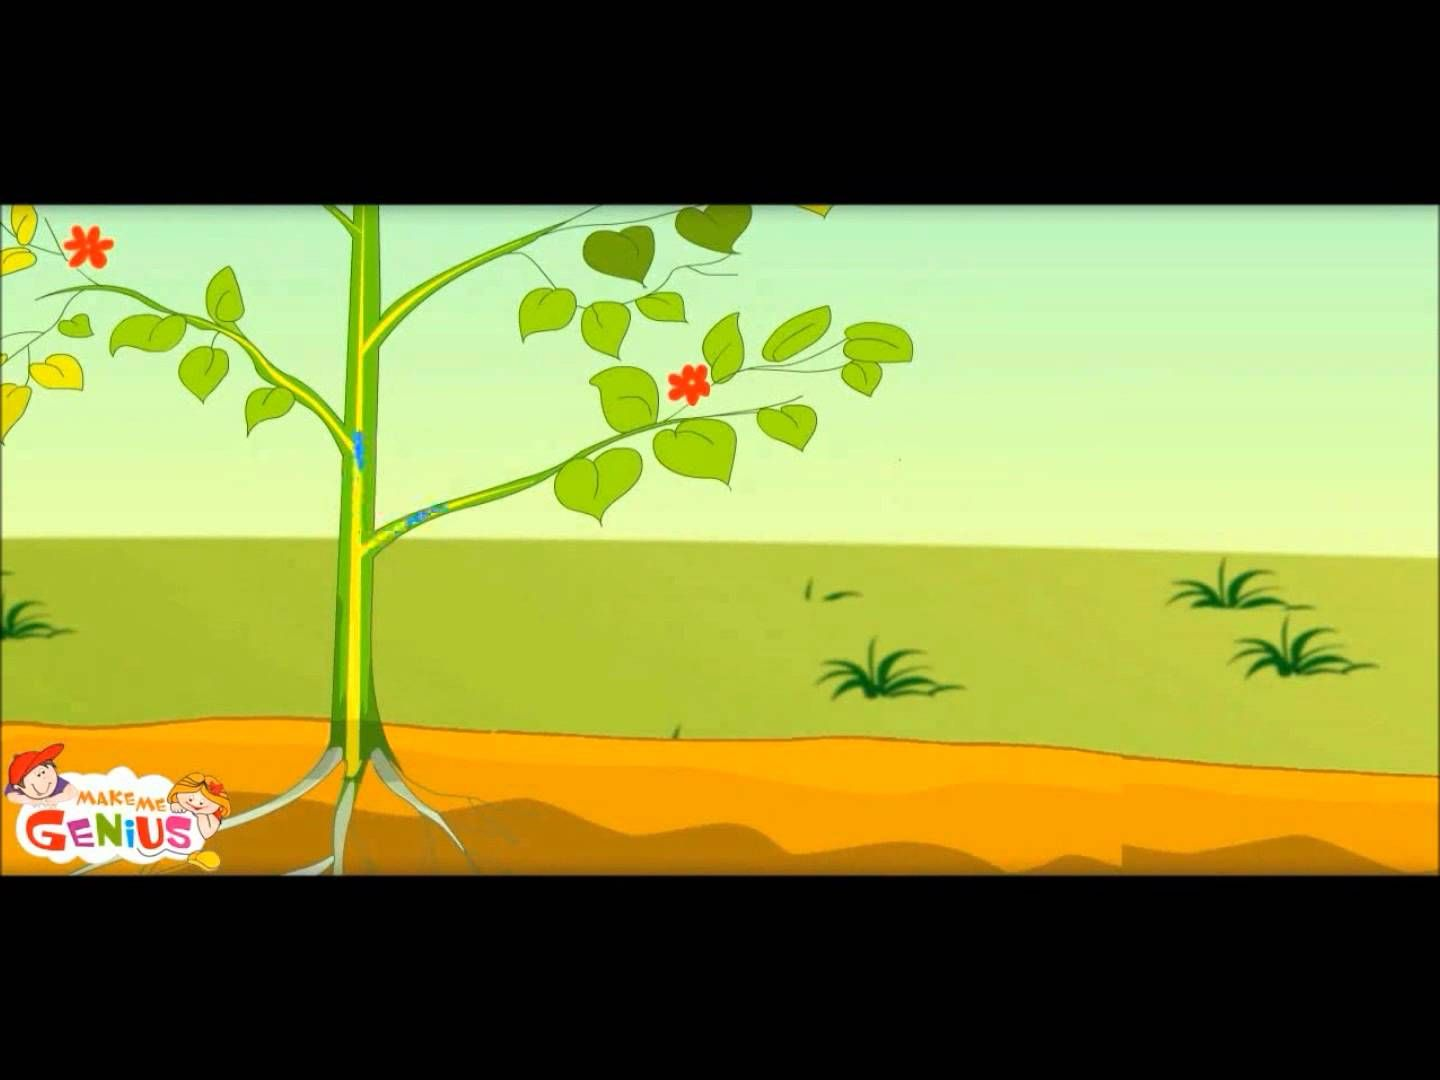 What is photosynthesis in plants class 3rdclass 4grade 3grade 4 what is photosynthesis in plants class 3rdclass 4grade 3grade 4grade 5 fandeluxe Choice Image